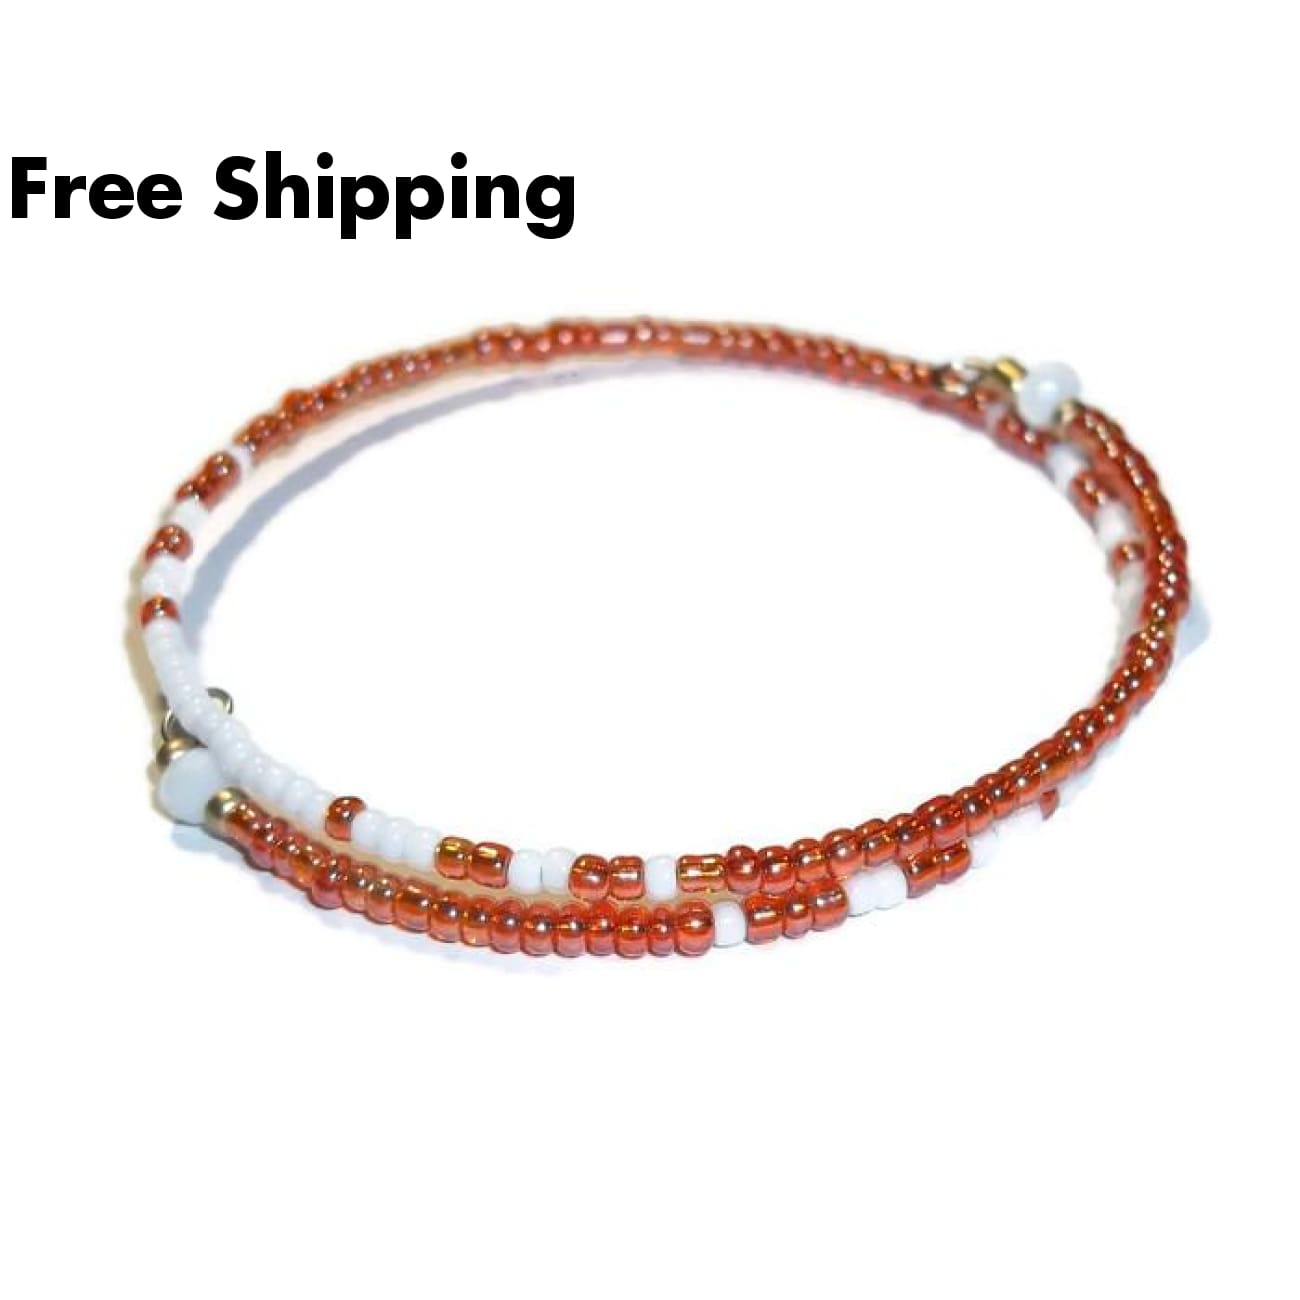 Orange & White Glass Beaded Artisan Crafted Stackables Adjustable Bracelet (Xxs-S) - New Arrival